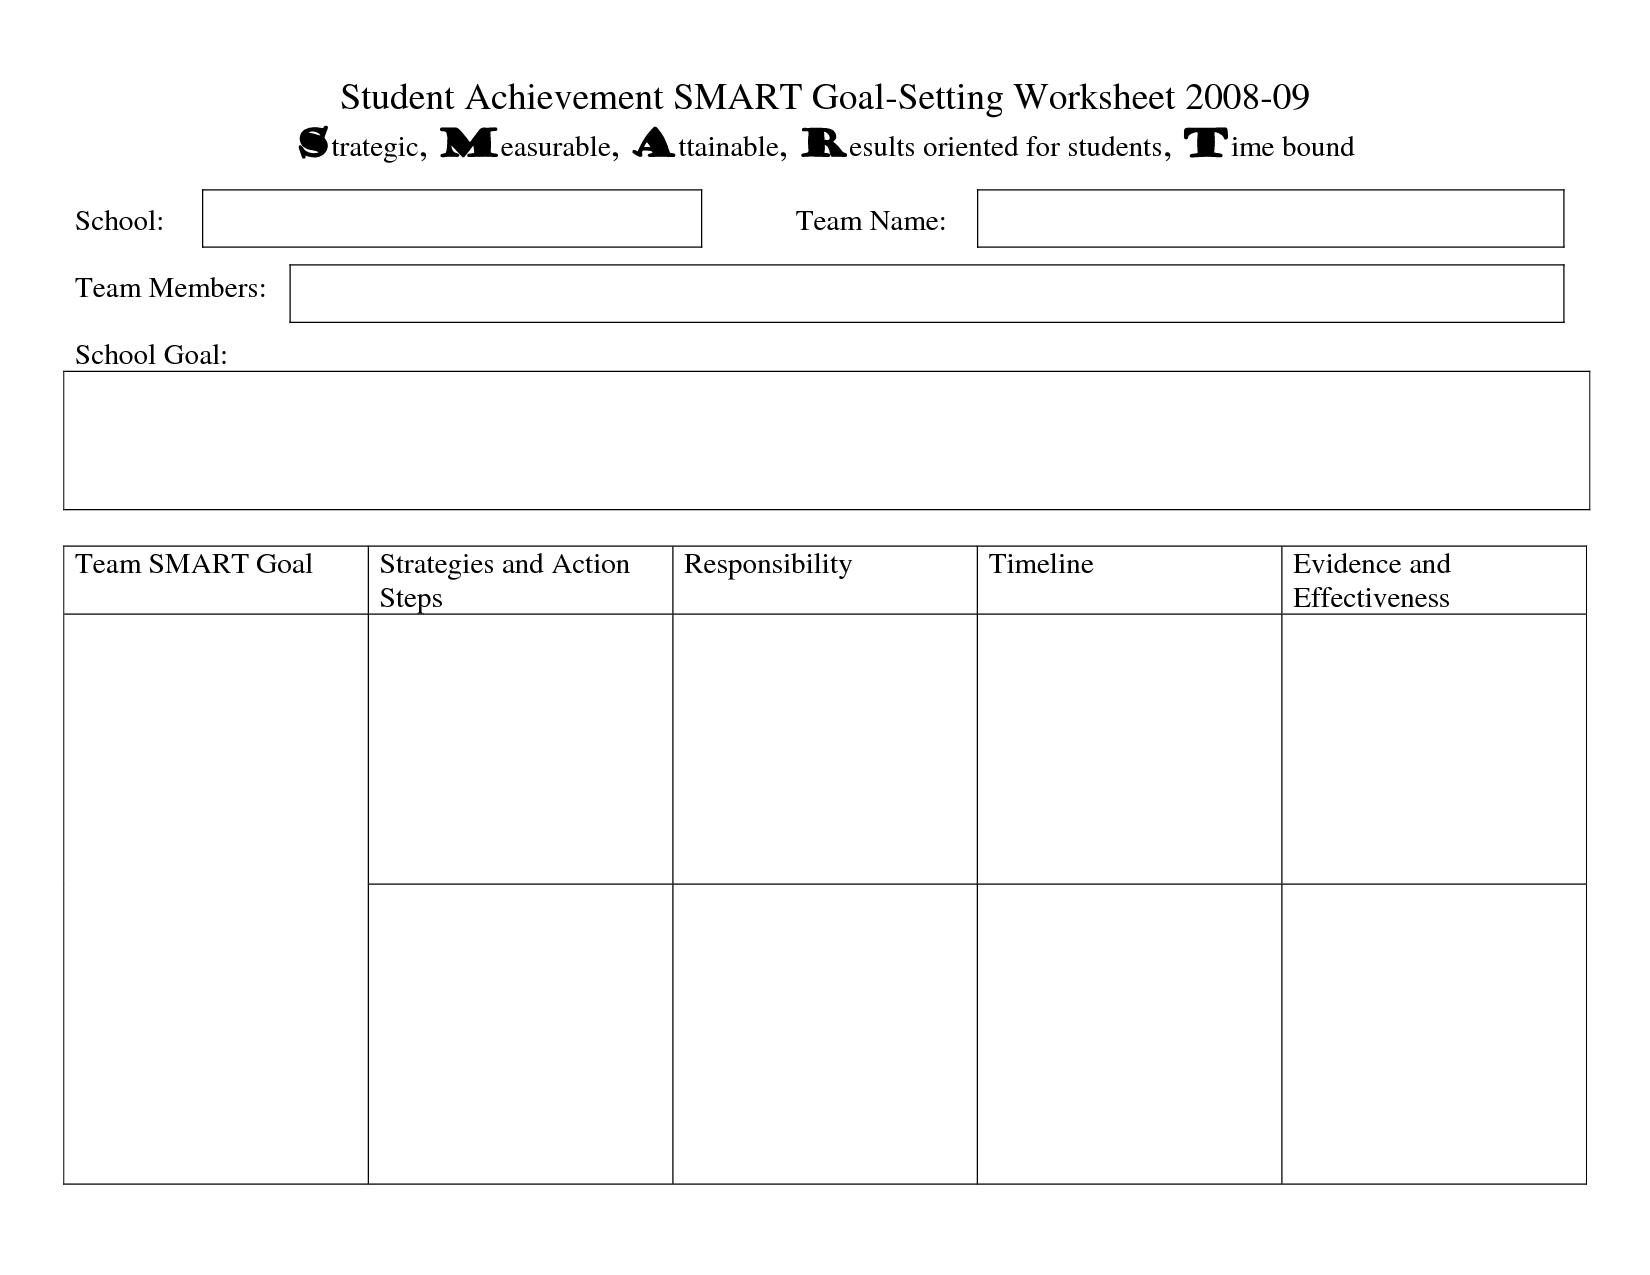 goal setting worksheet middle school Termolak – Student Goal Setting Worksheet